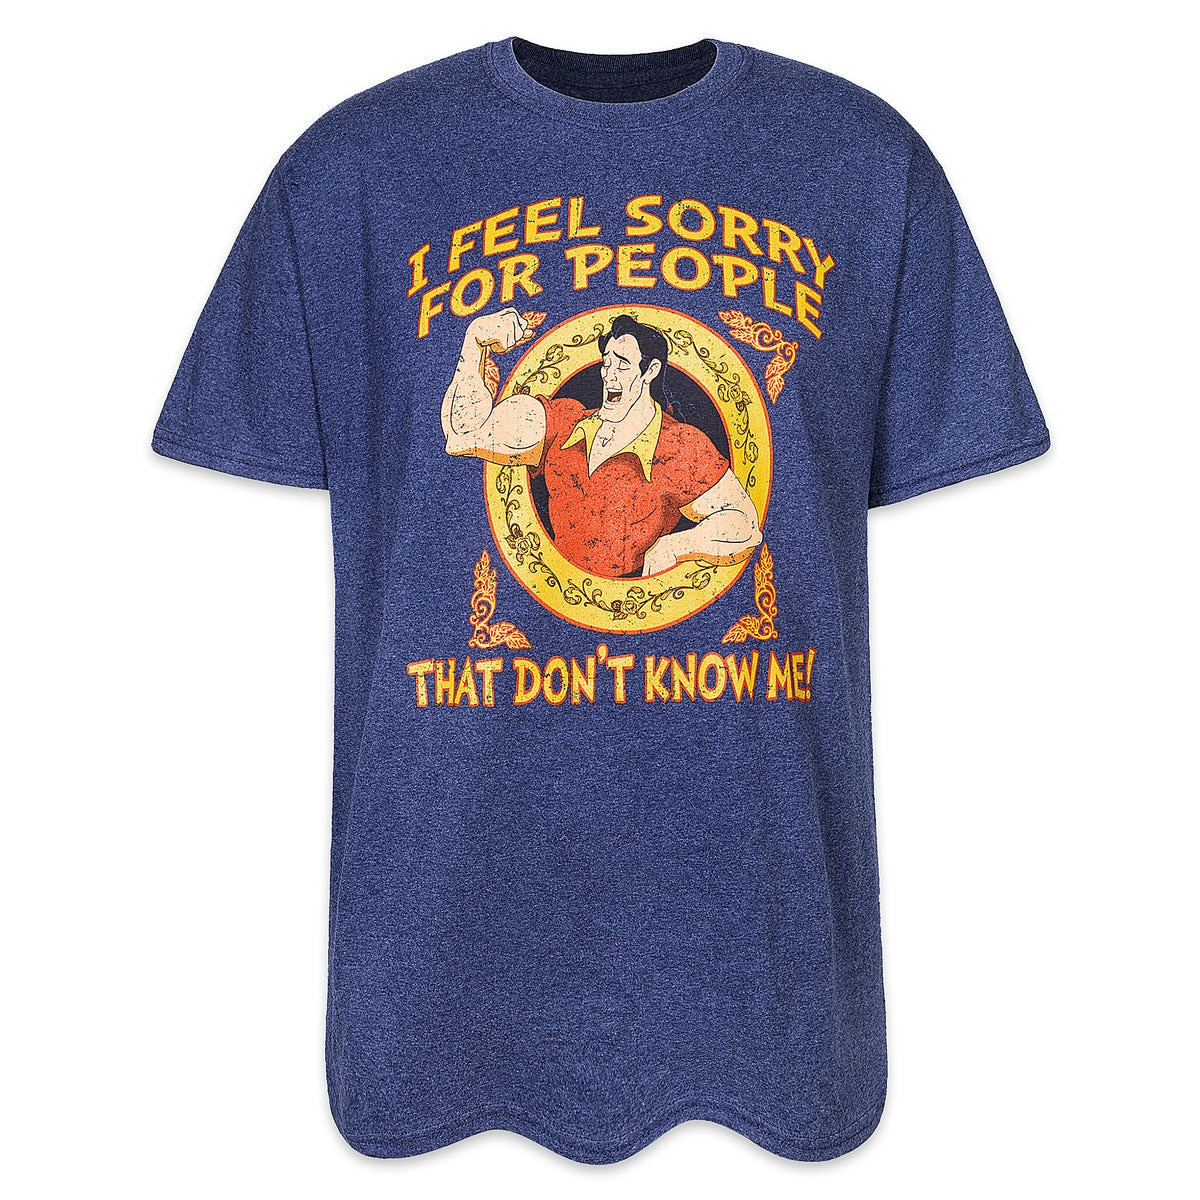 87633c654fc4 Product Image of Gaston T-Shirt for Adults - Beauty and the Beast   1